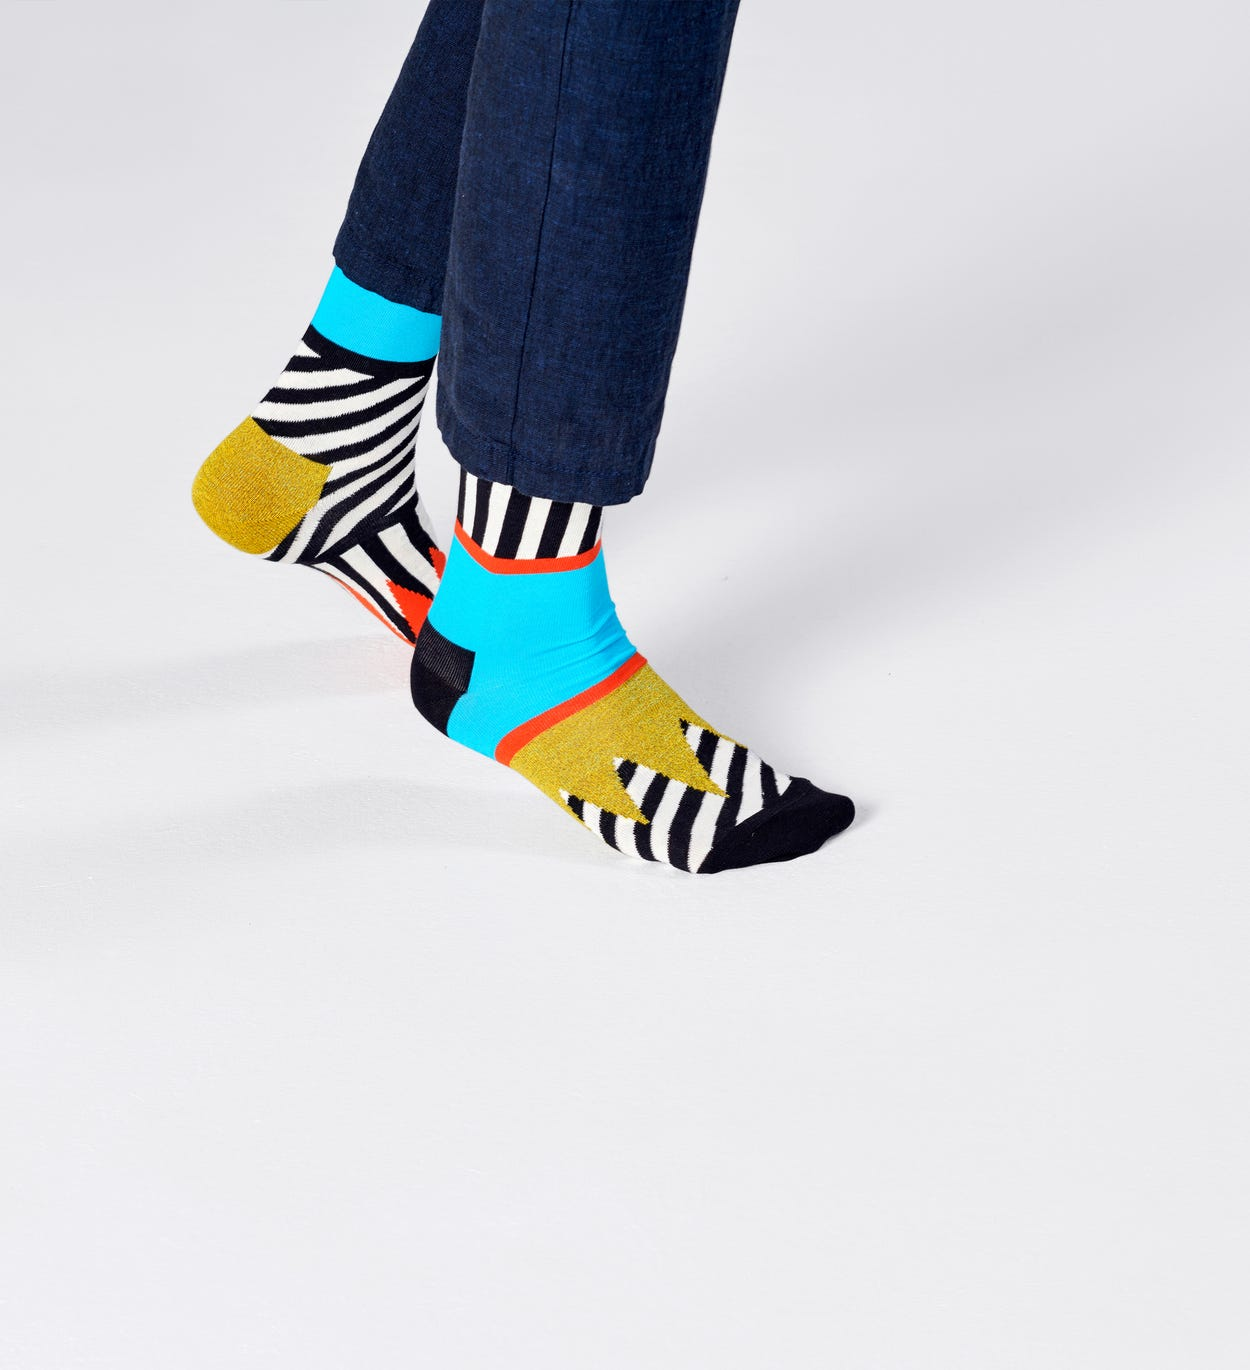 Chaussettes Mix And Match, Noires | Happy Socks